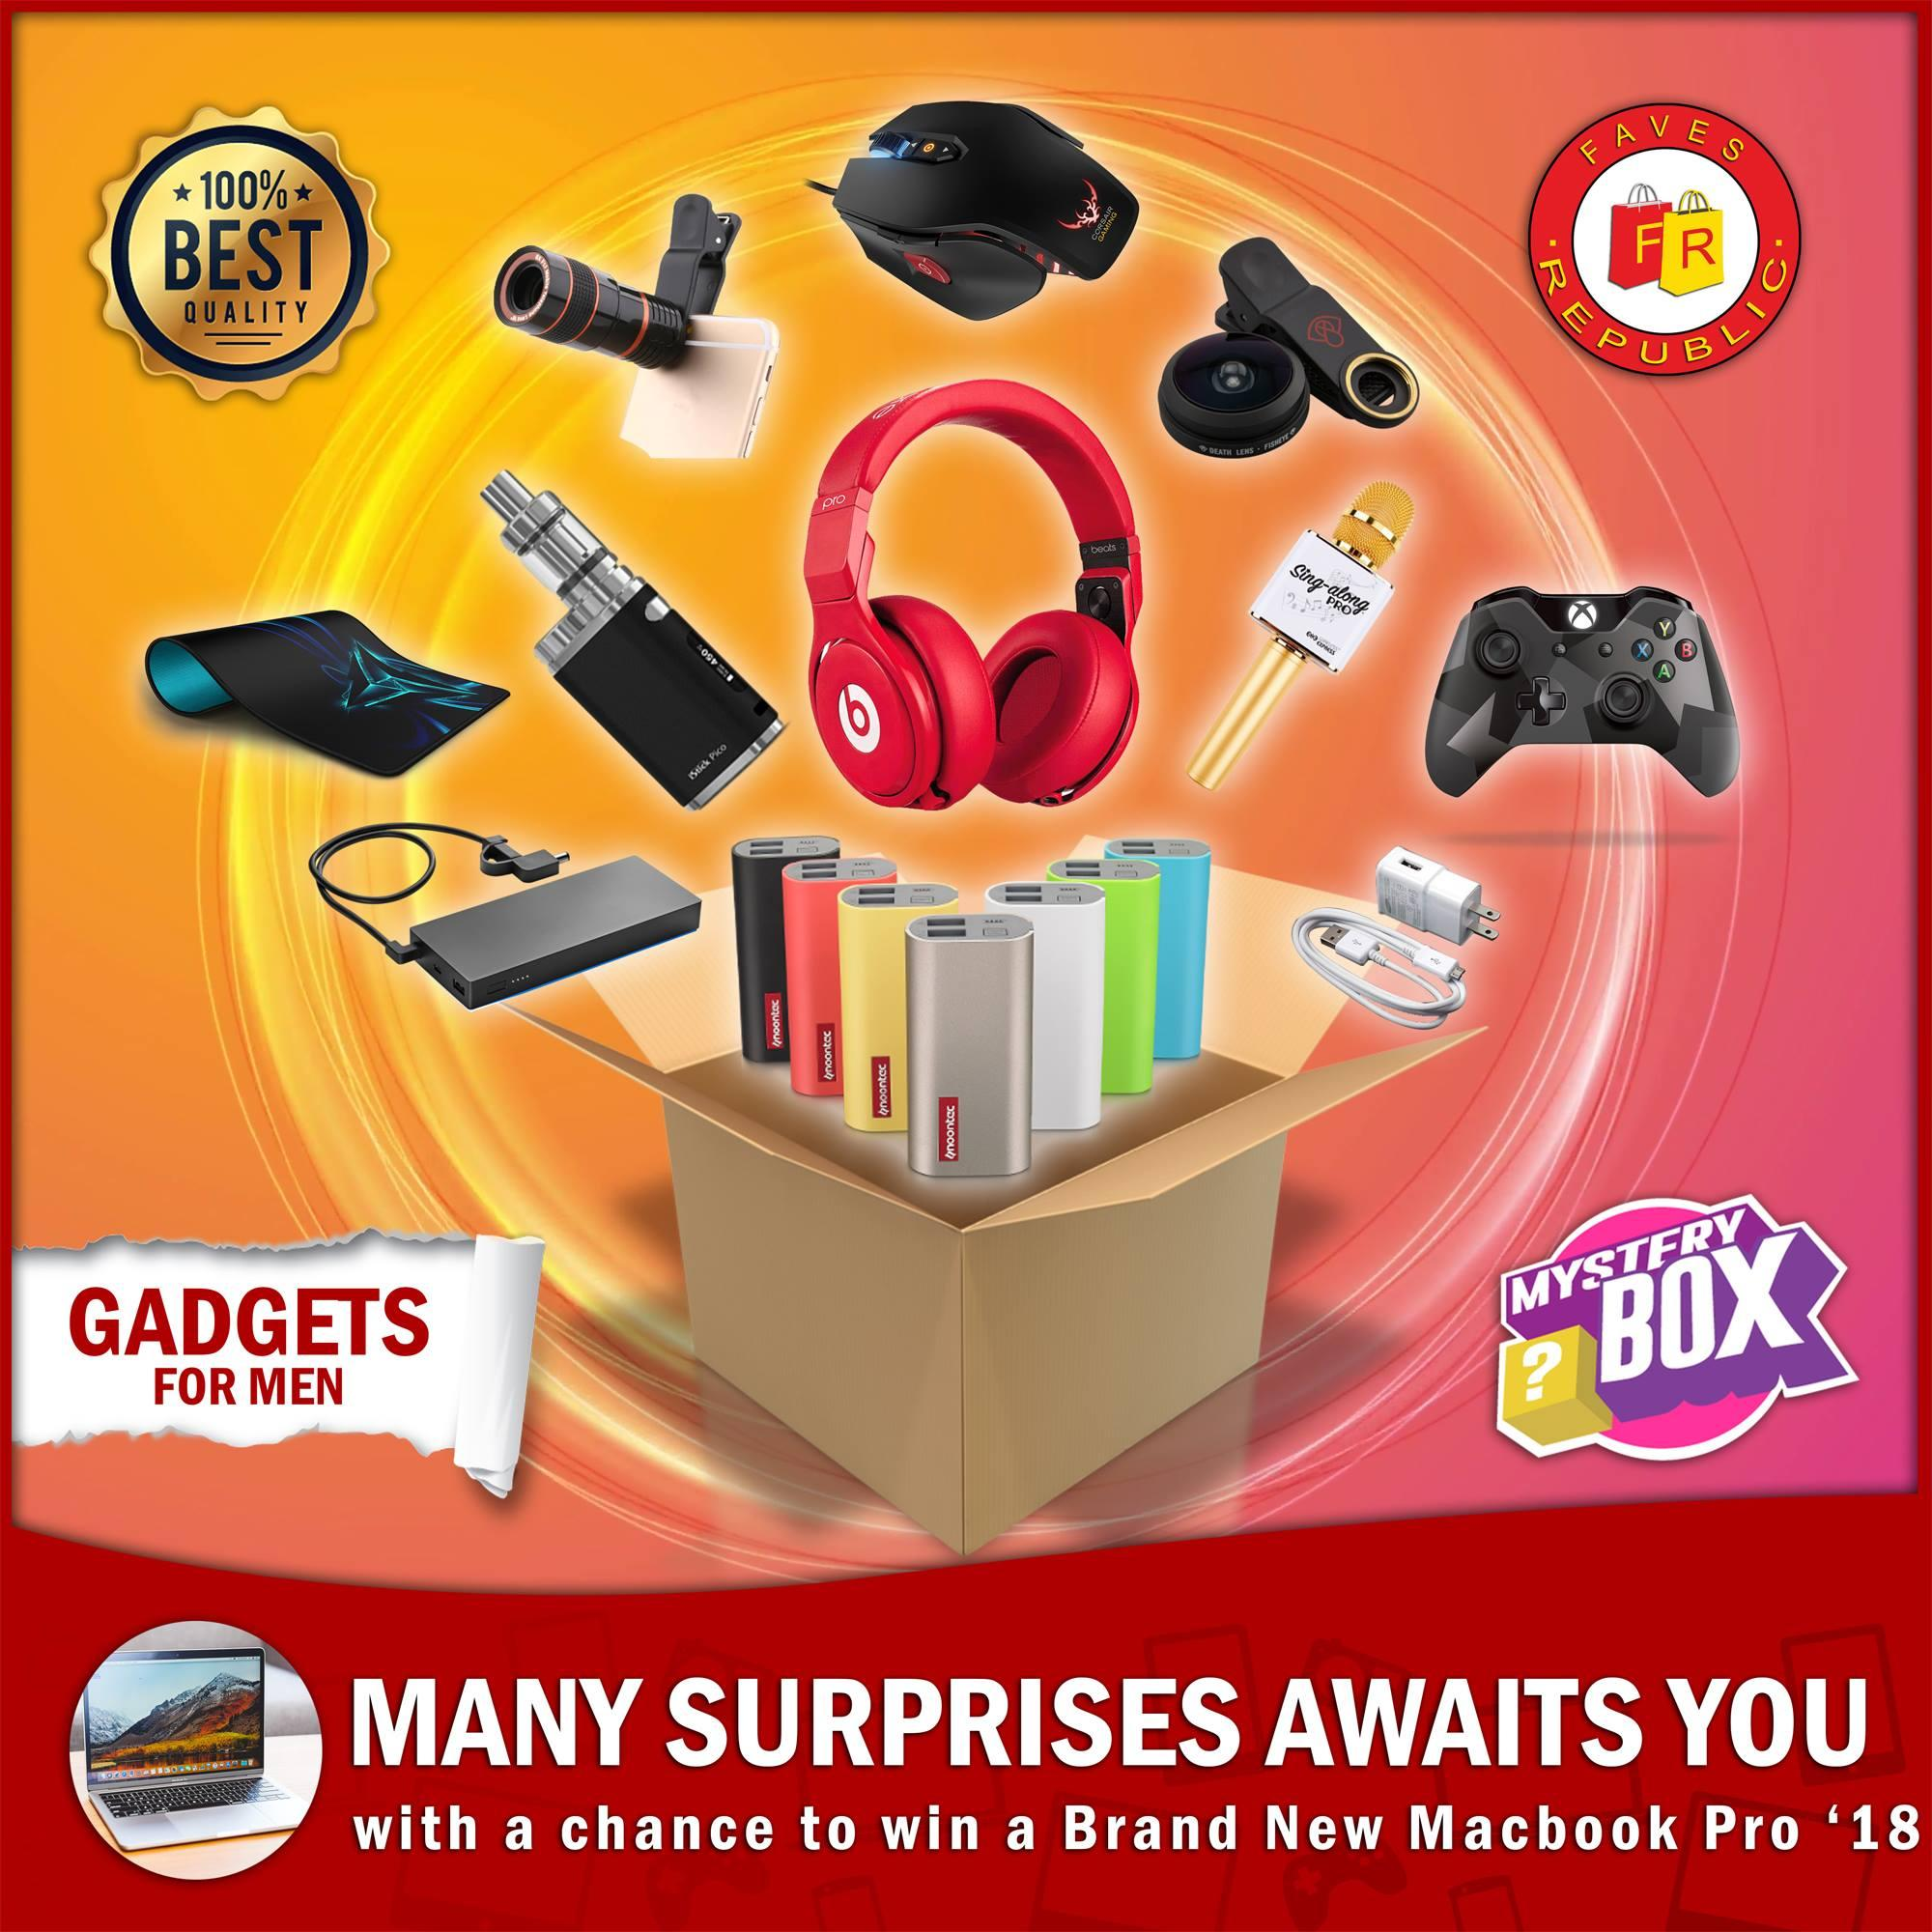 Mystery Box Gadgets And Get A Chance To Win Cool Prizes Including Brandnew Macbook Pro 18 - 3 By H&m Merchandise.